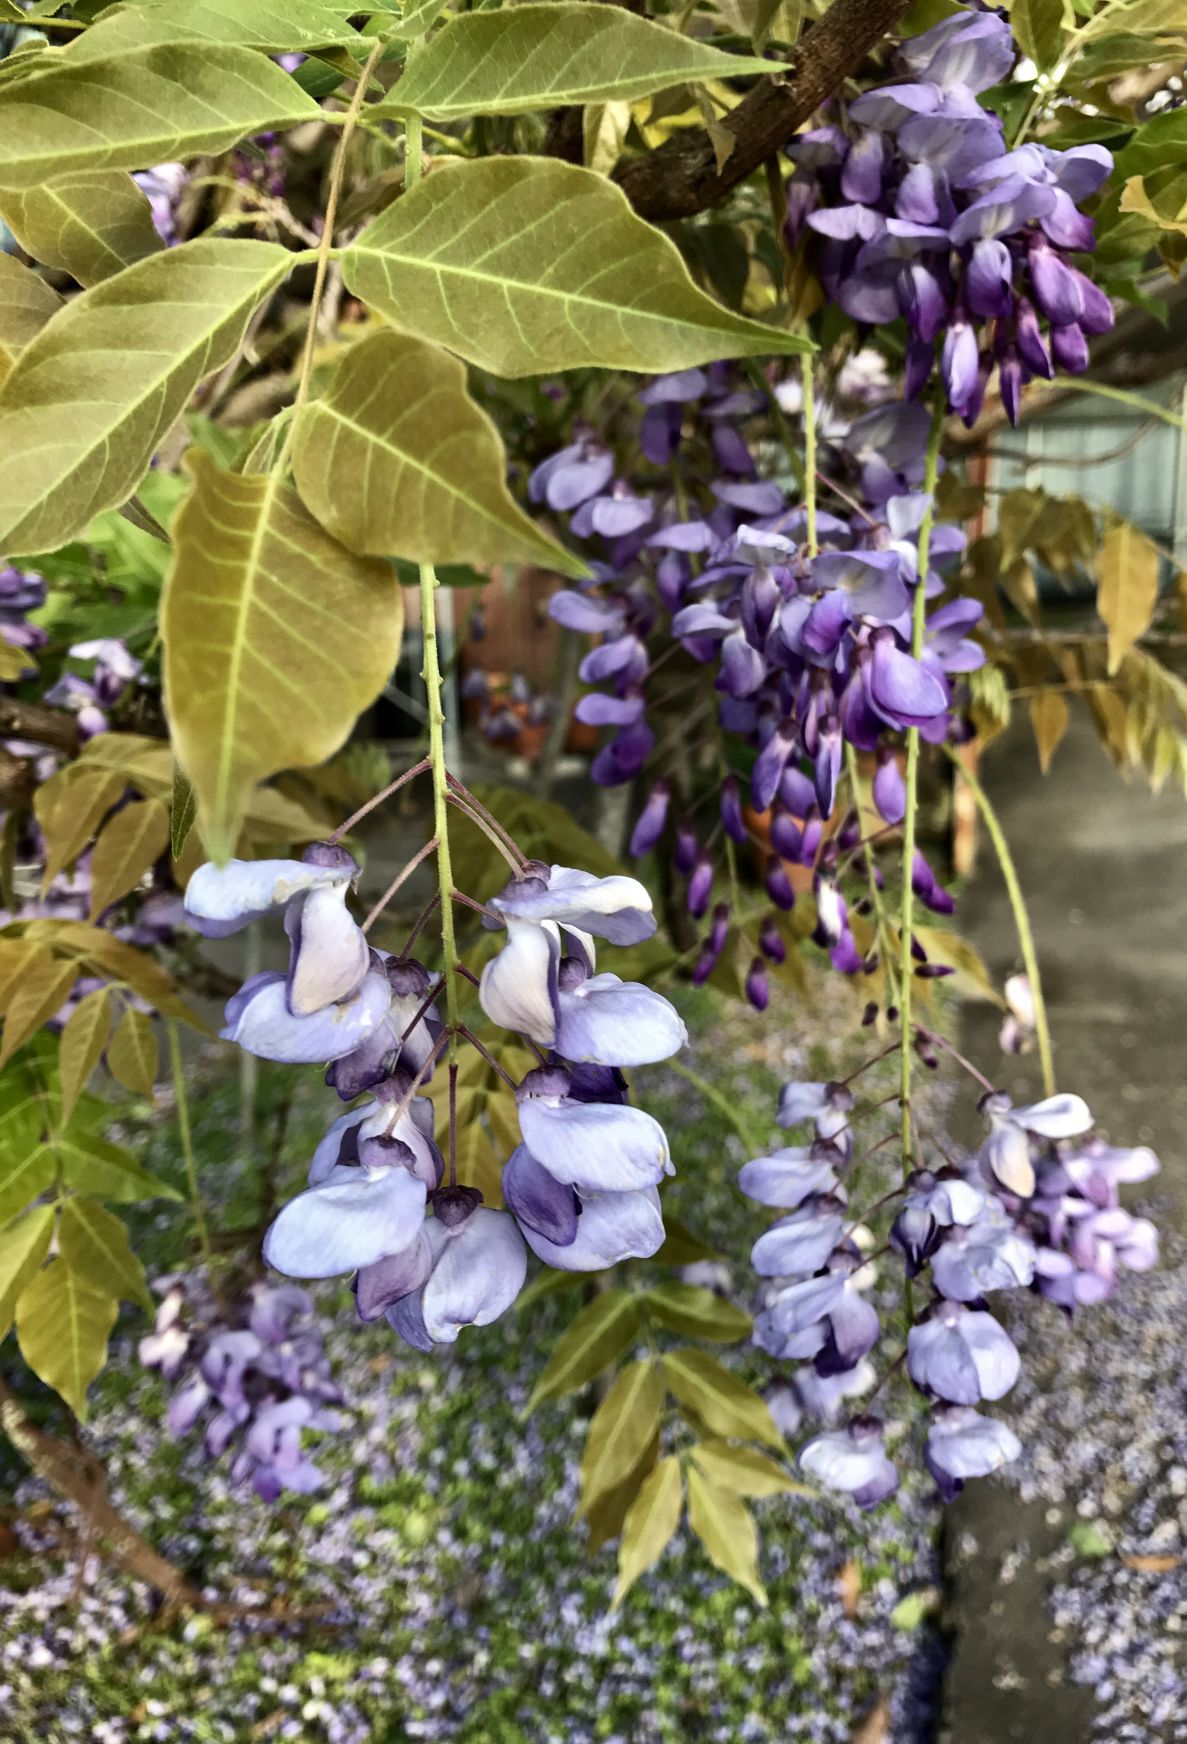 Some Call It A Nuisance But Chinese Wisteria Wins Hearts When It